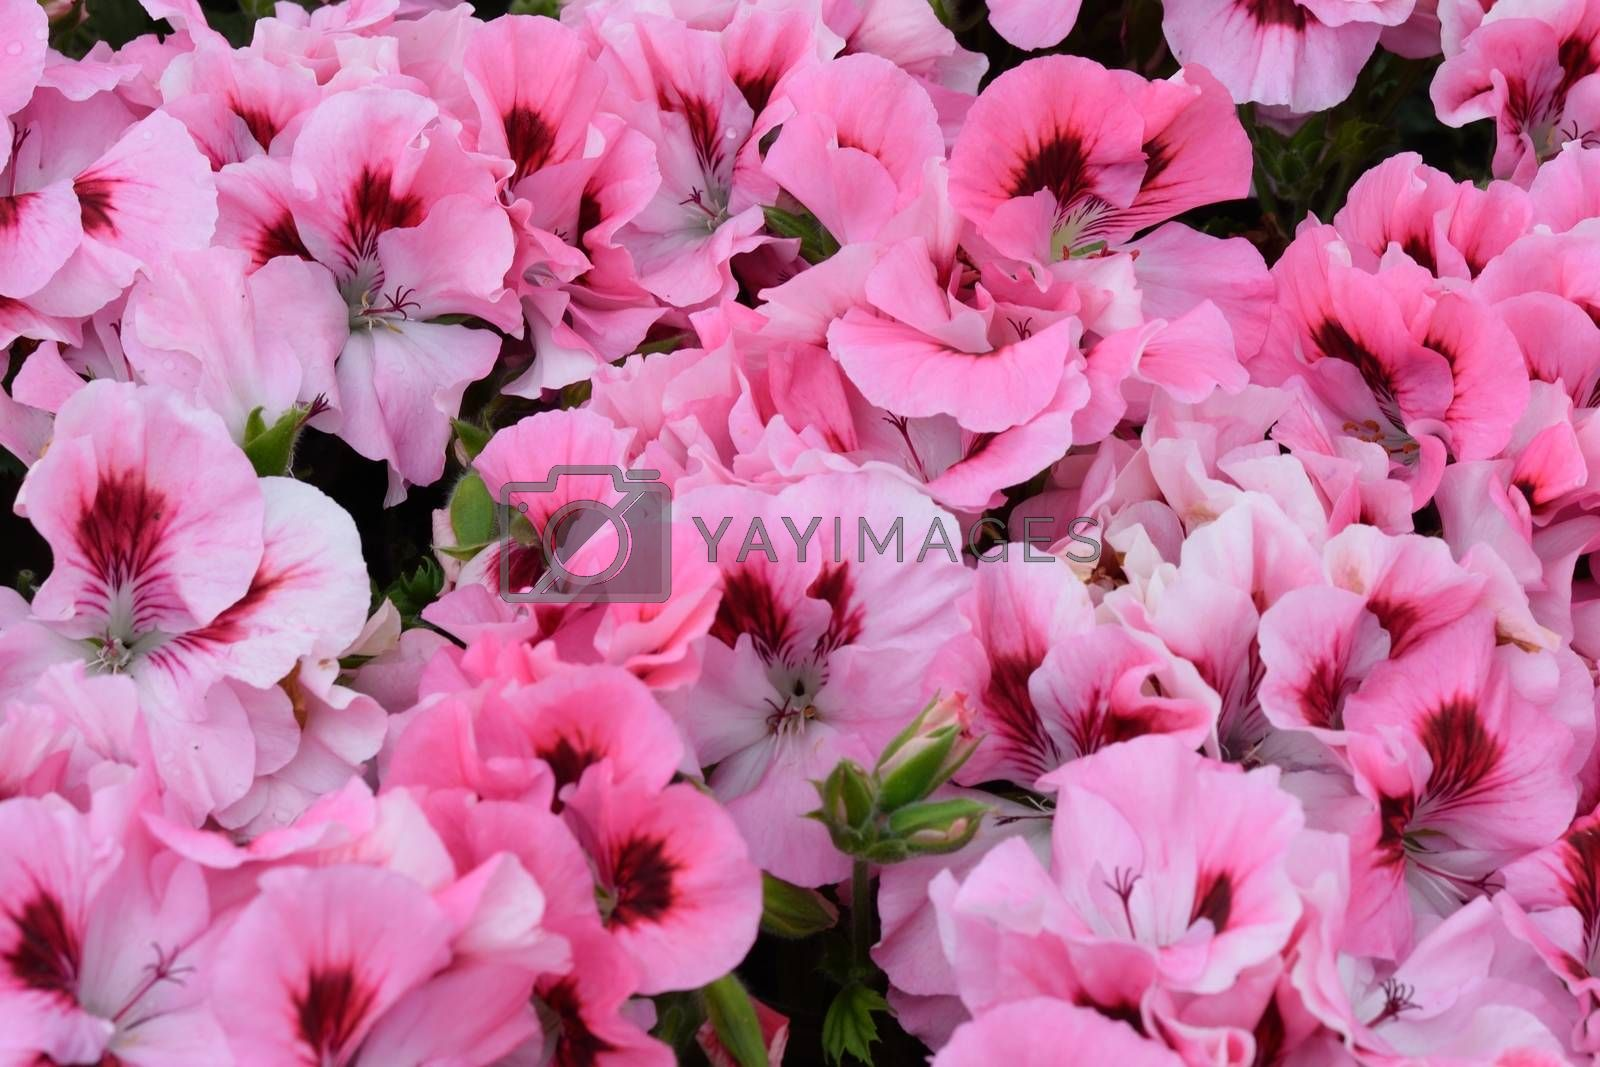 Mass of Bright pink flowers